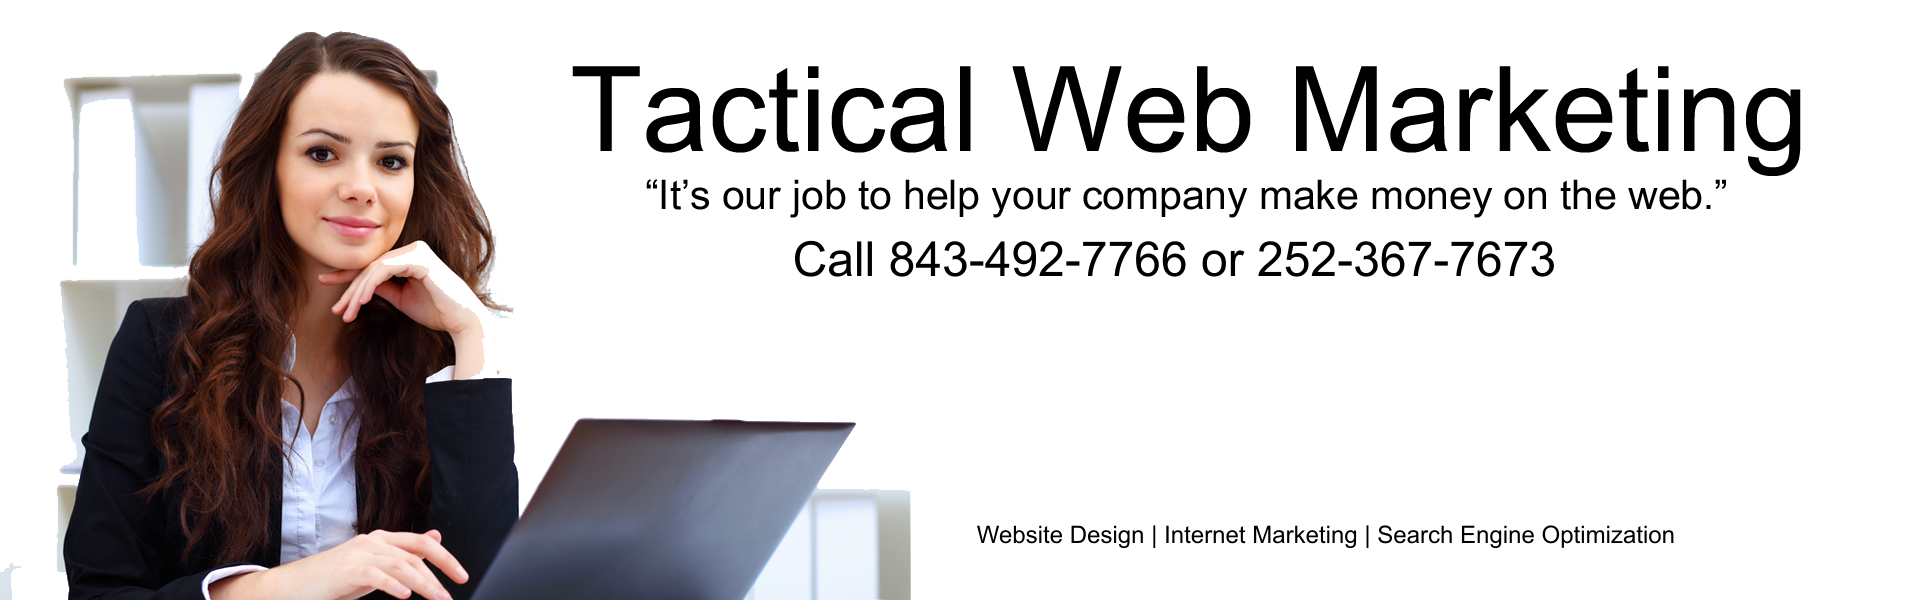 image shows Digital Business Services' logo and slogan for internet marketing services